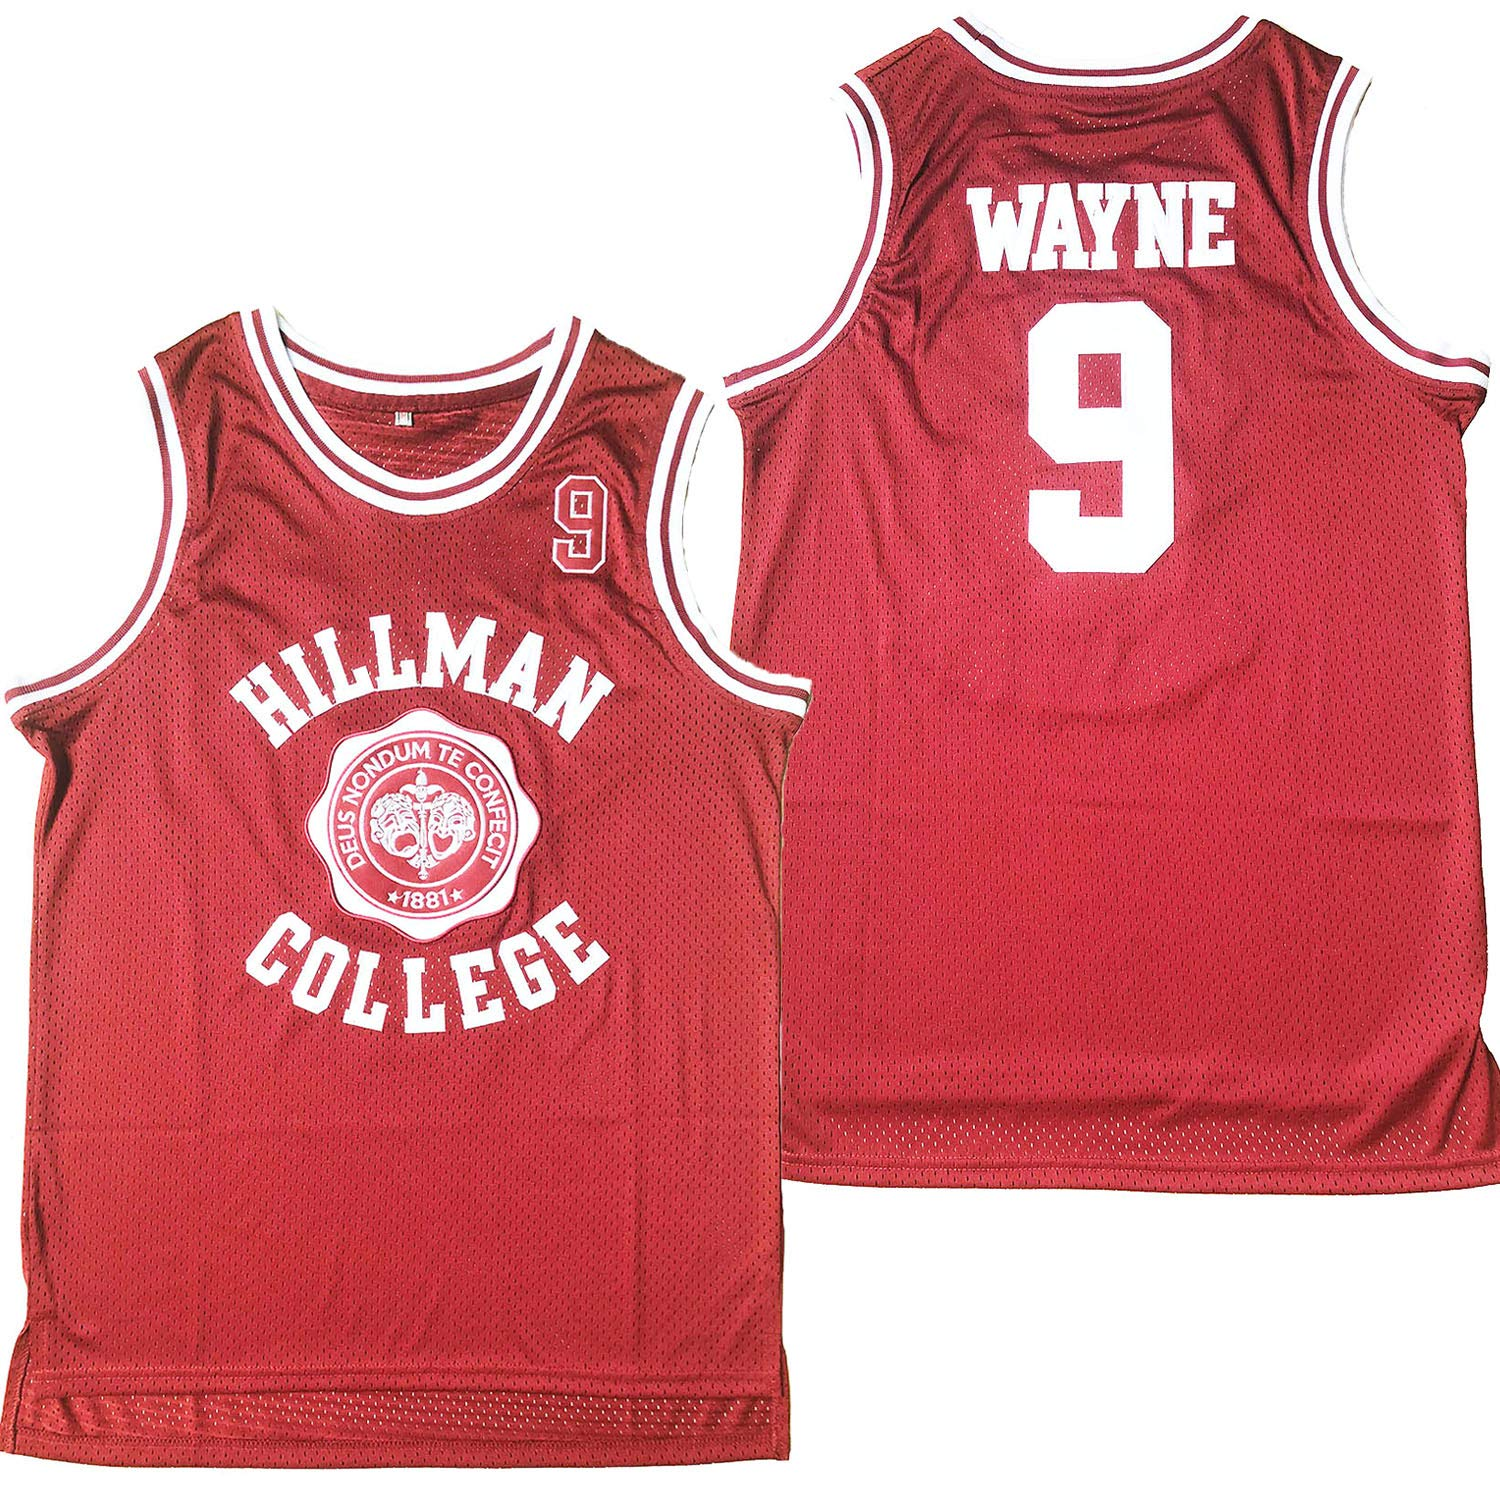 51b3b8b281f6 Amazon.com  Dwayne Wayne  9 A Different World Hillman College Theater  Basketball Jersey(Red